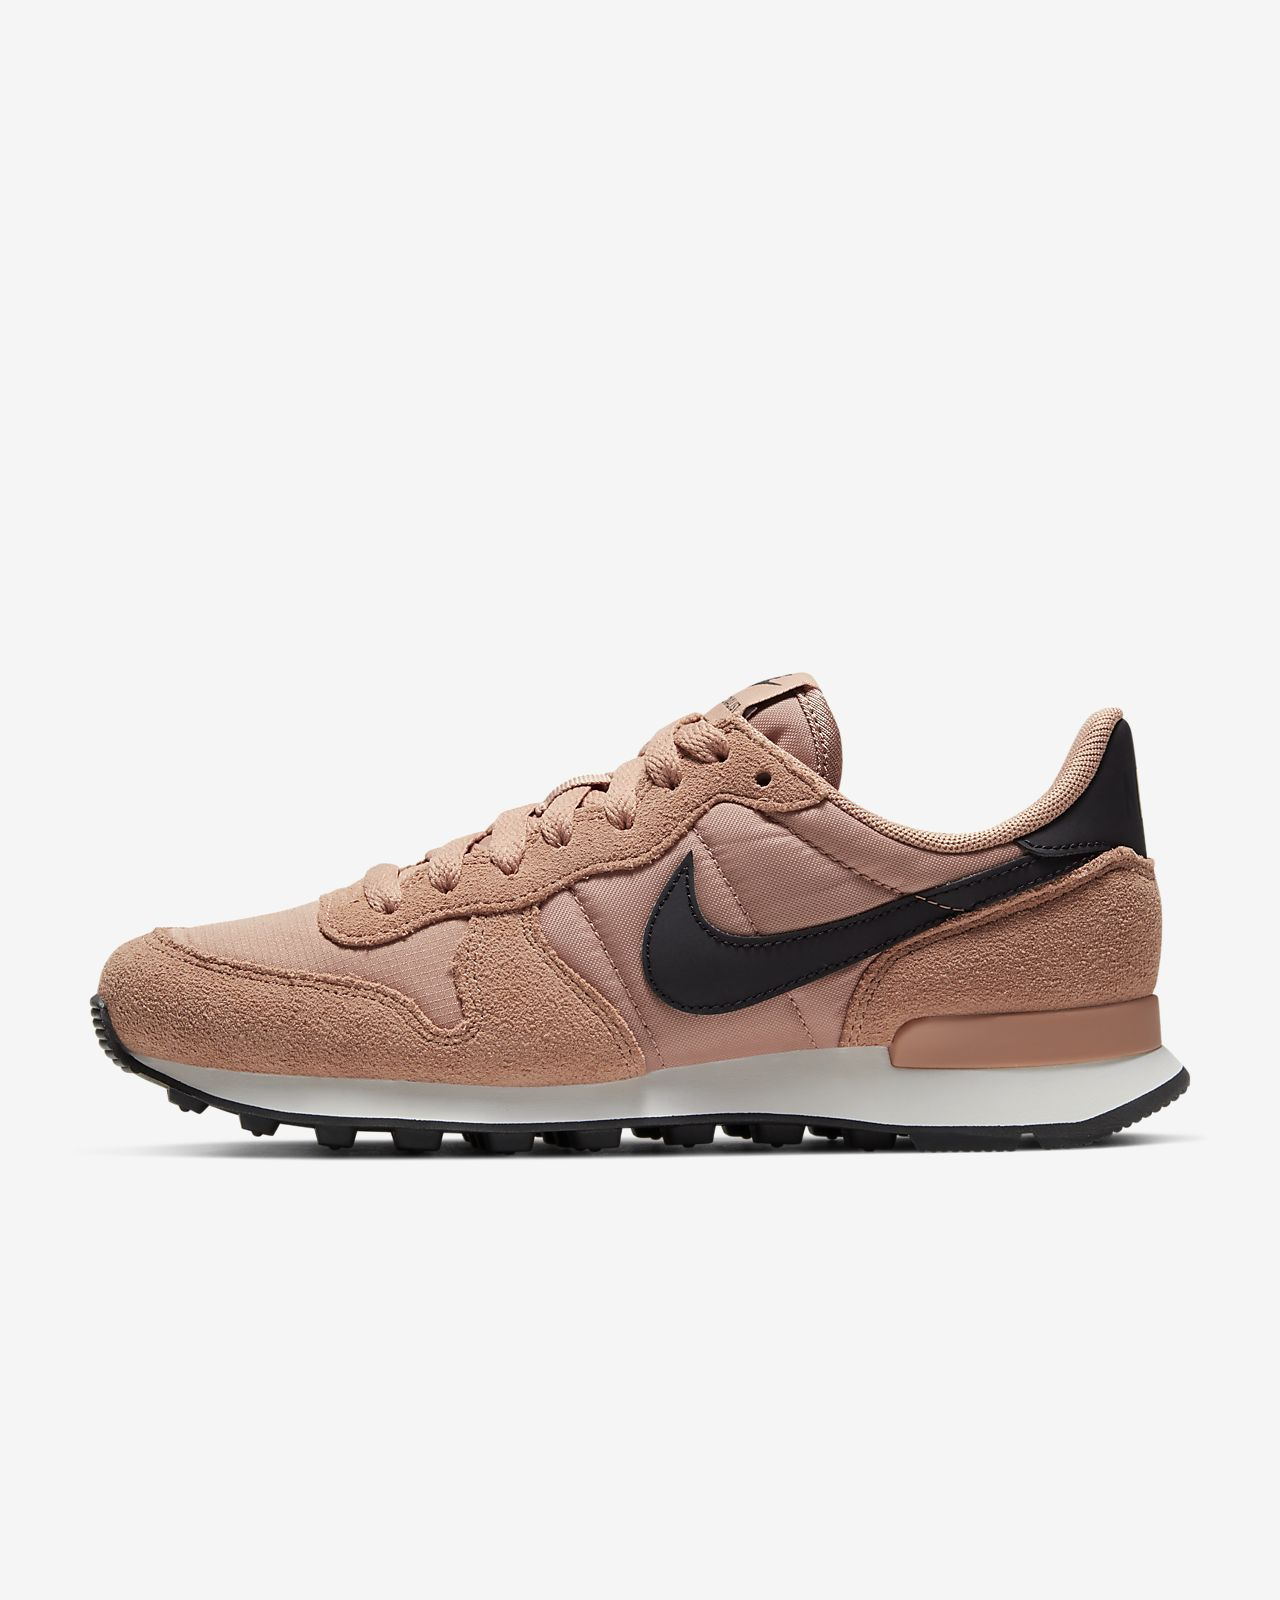 brand new 39c9f 80900 Low Resolution Chaussure Nike Internationalist pour Femme Chaussure Nike  Internationalist pour Femme